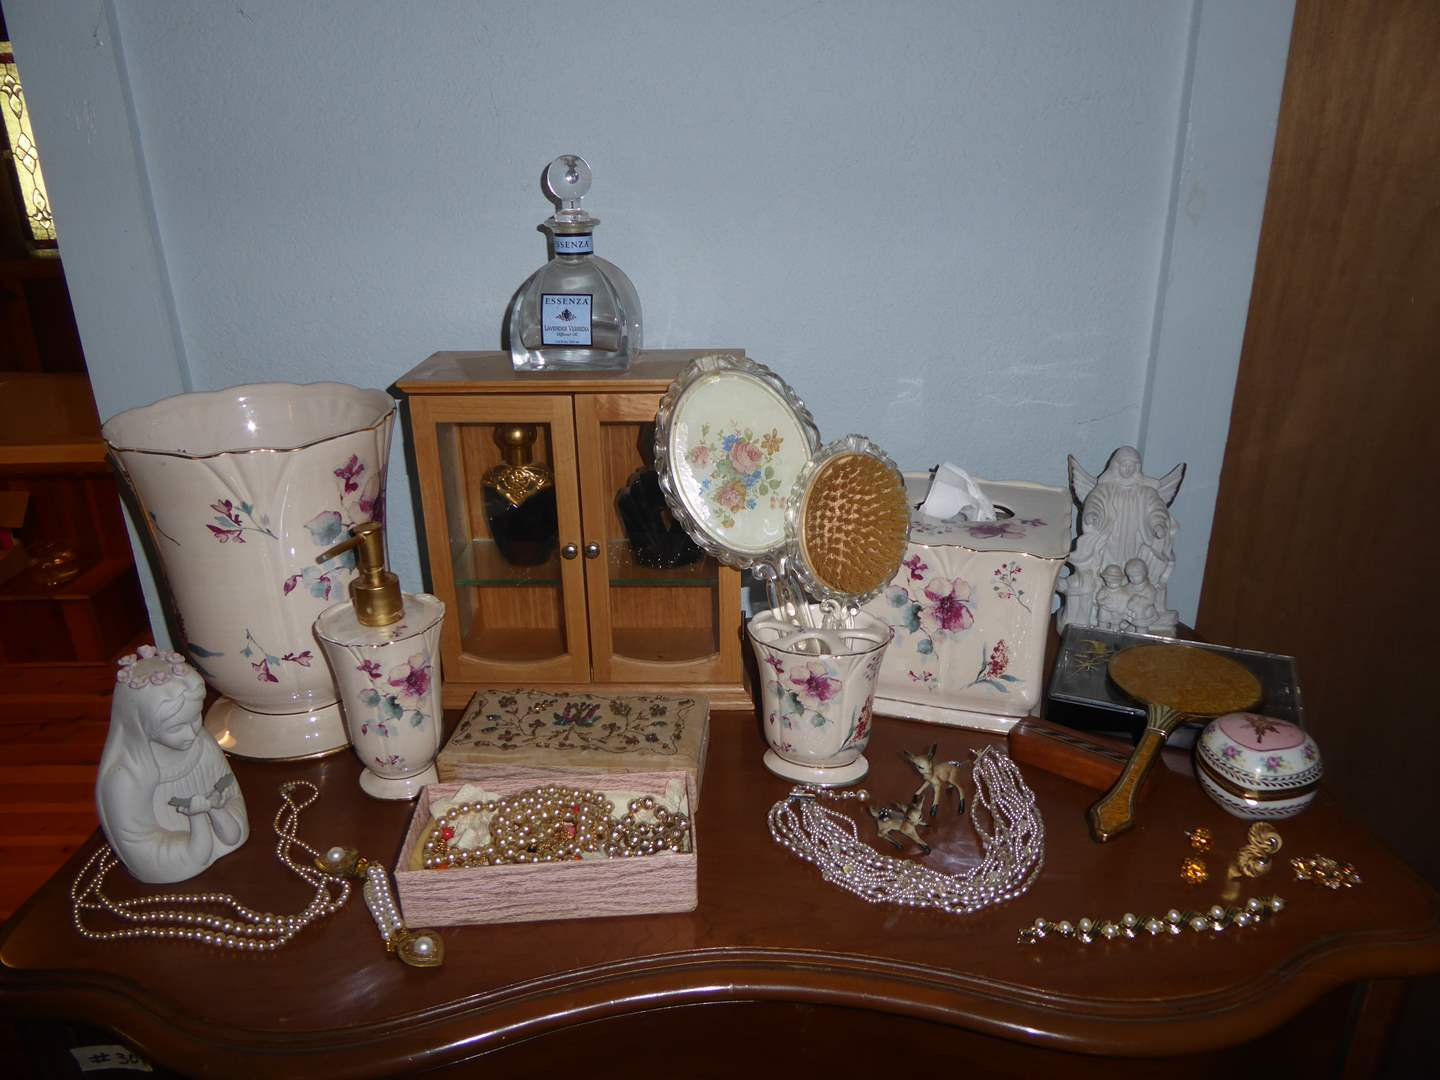 Lot # 303 - Perfume Bottles, Costume Jewelry & Bathroom Decor  (main image)